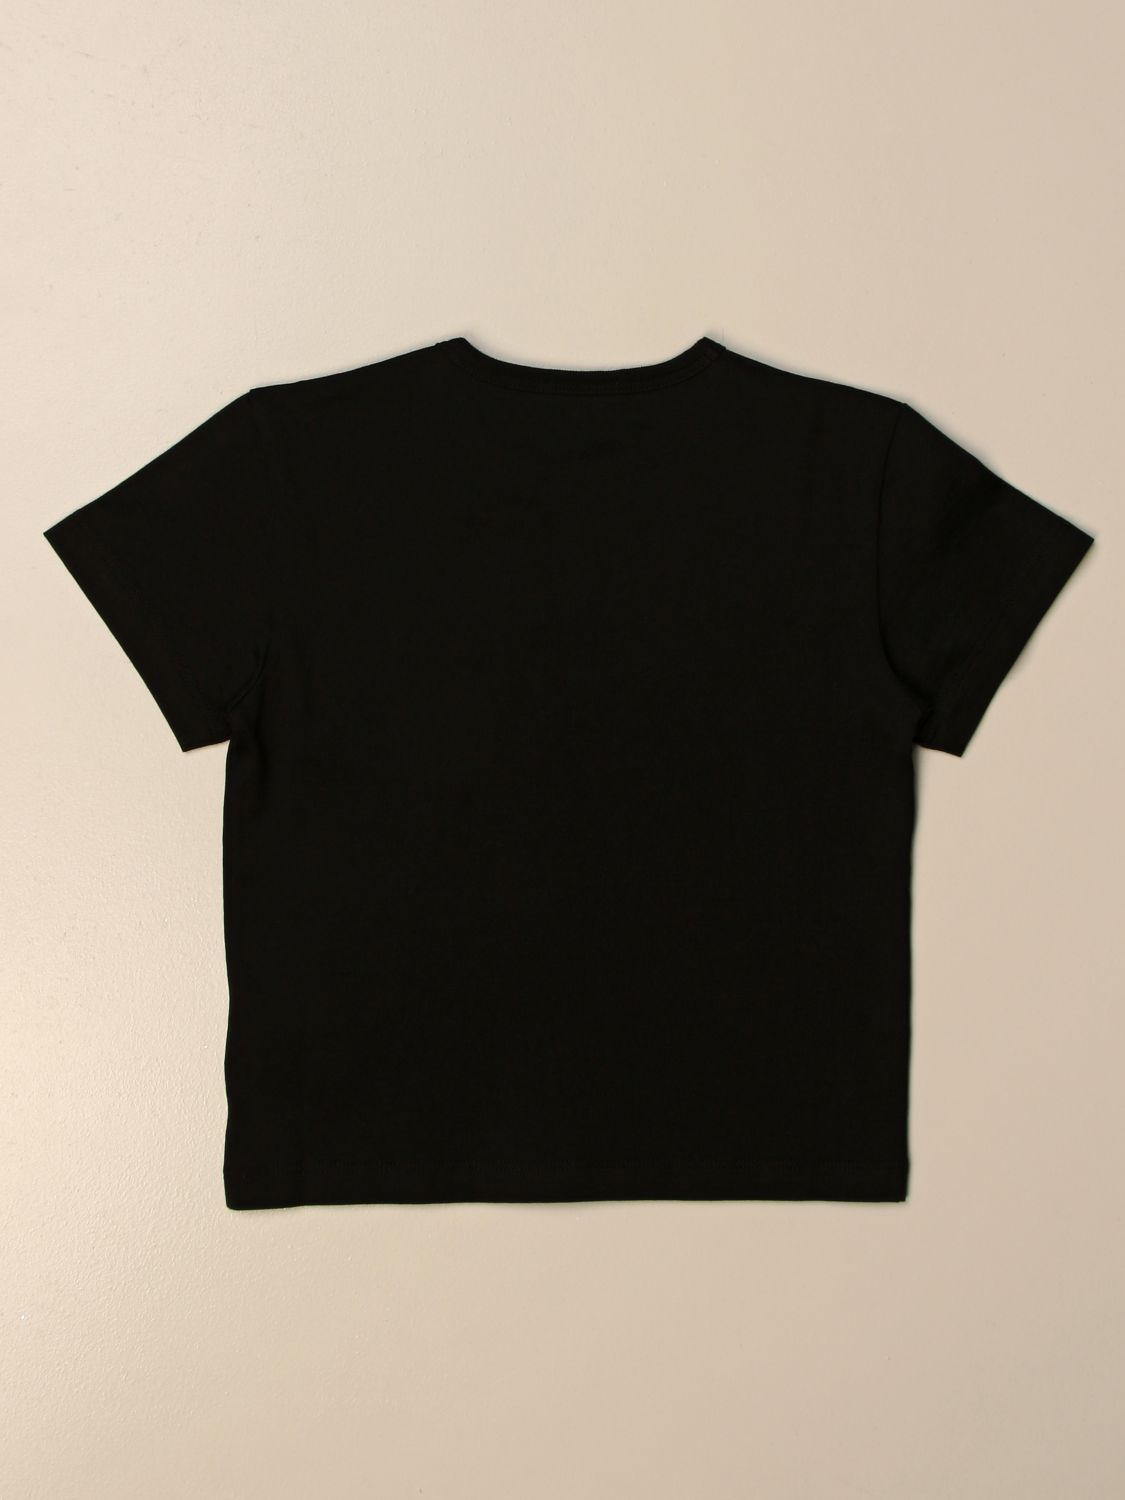 T-shirt Dolce & Gabbana: T-shirt Dolce & Gabbana in cotone con stampa Made in Italy nero 2